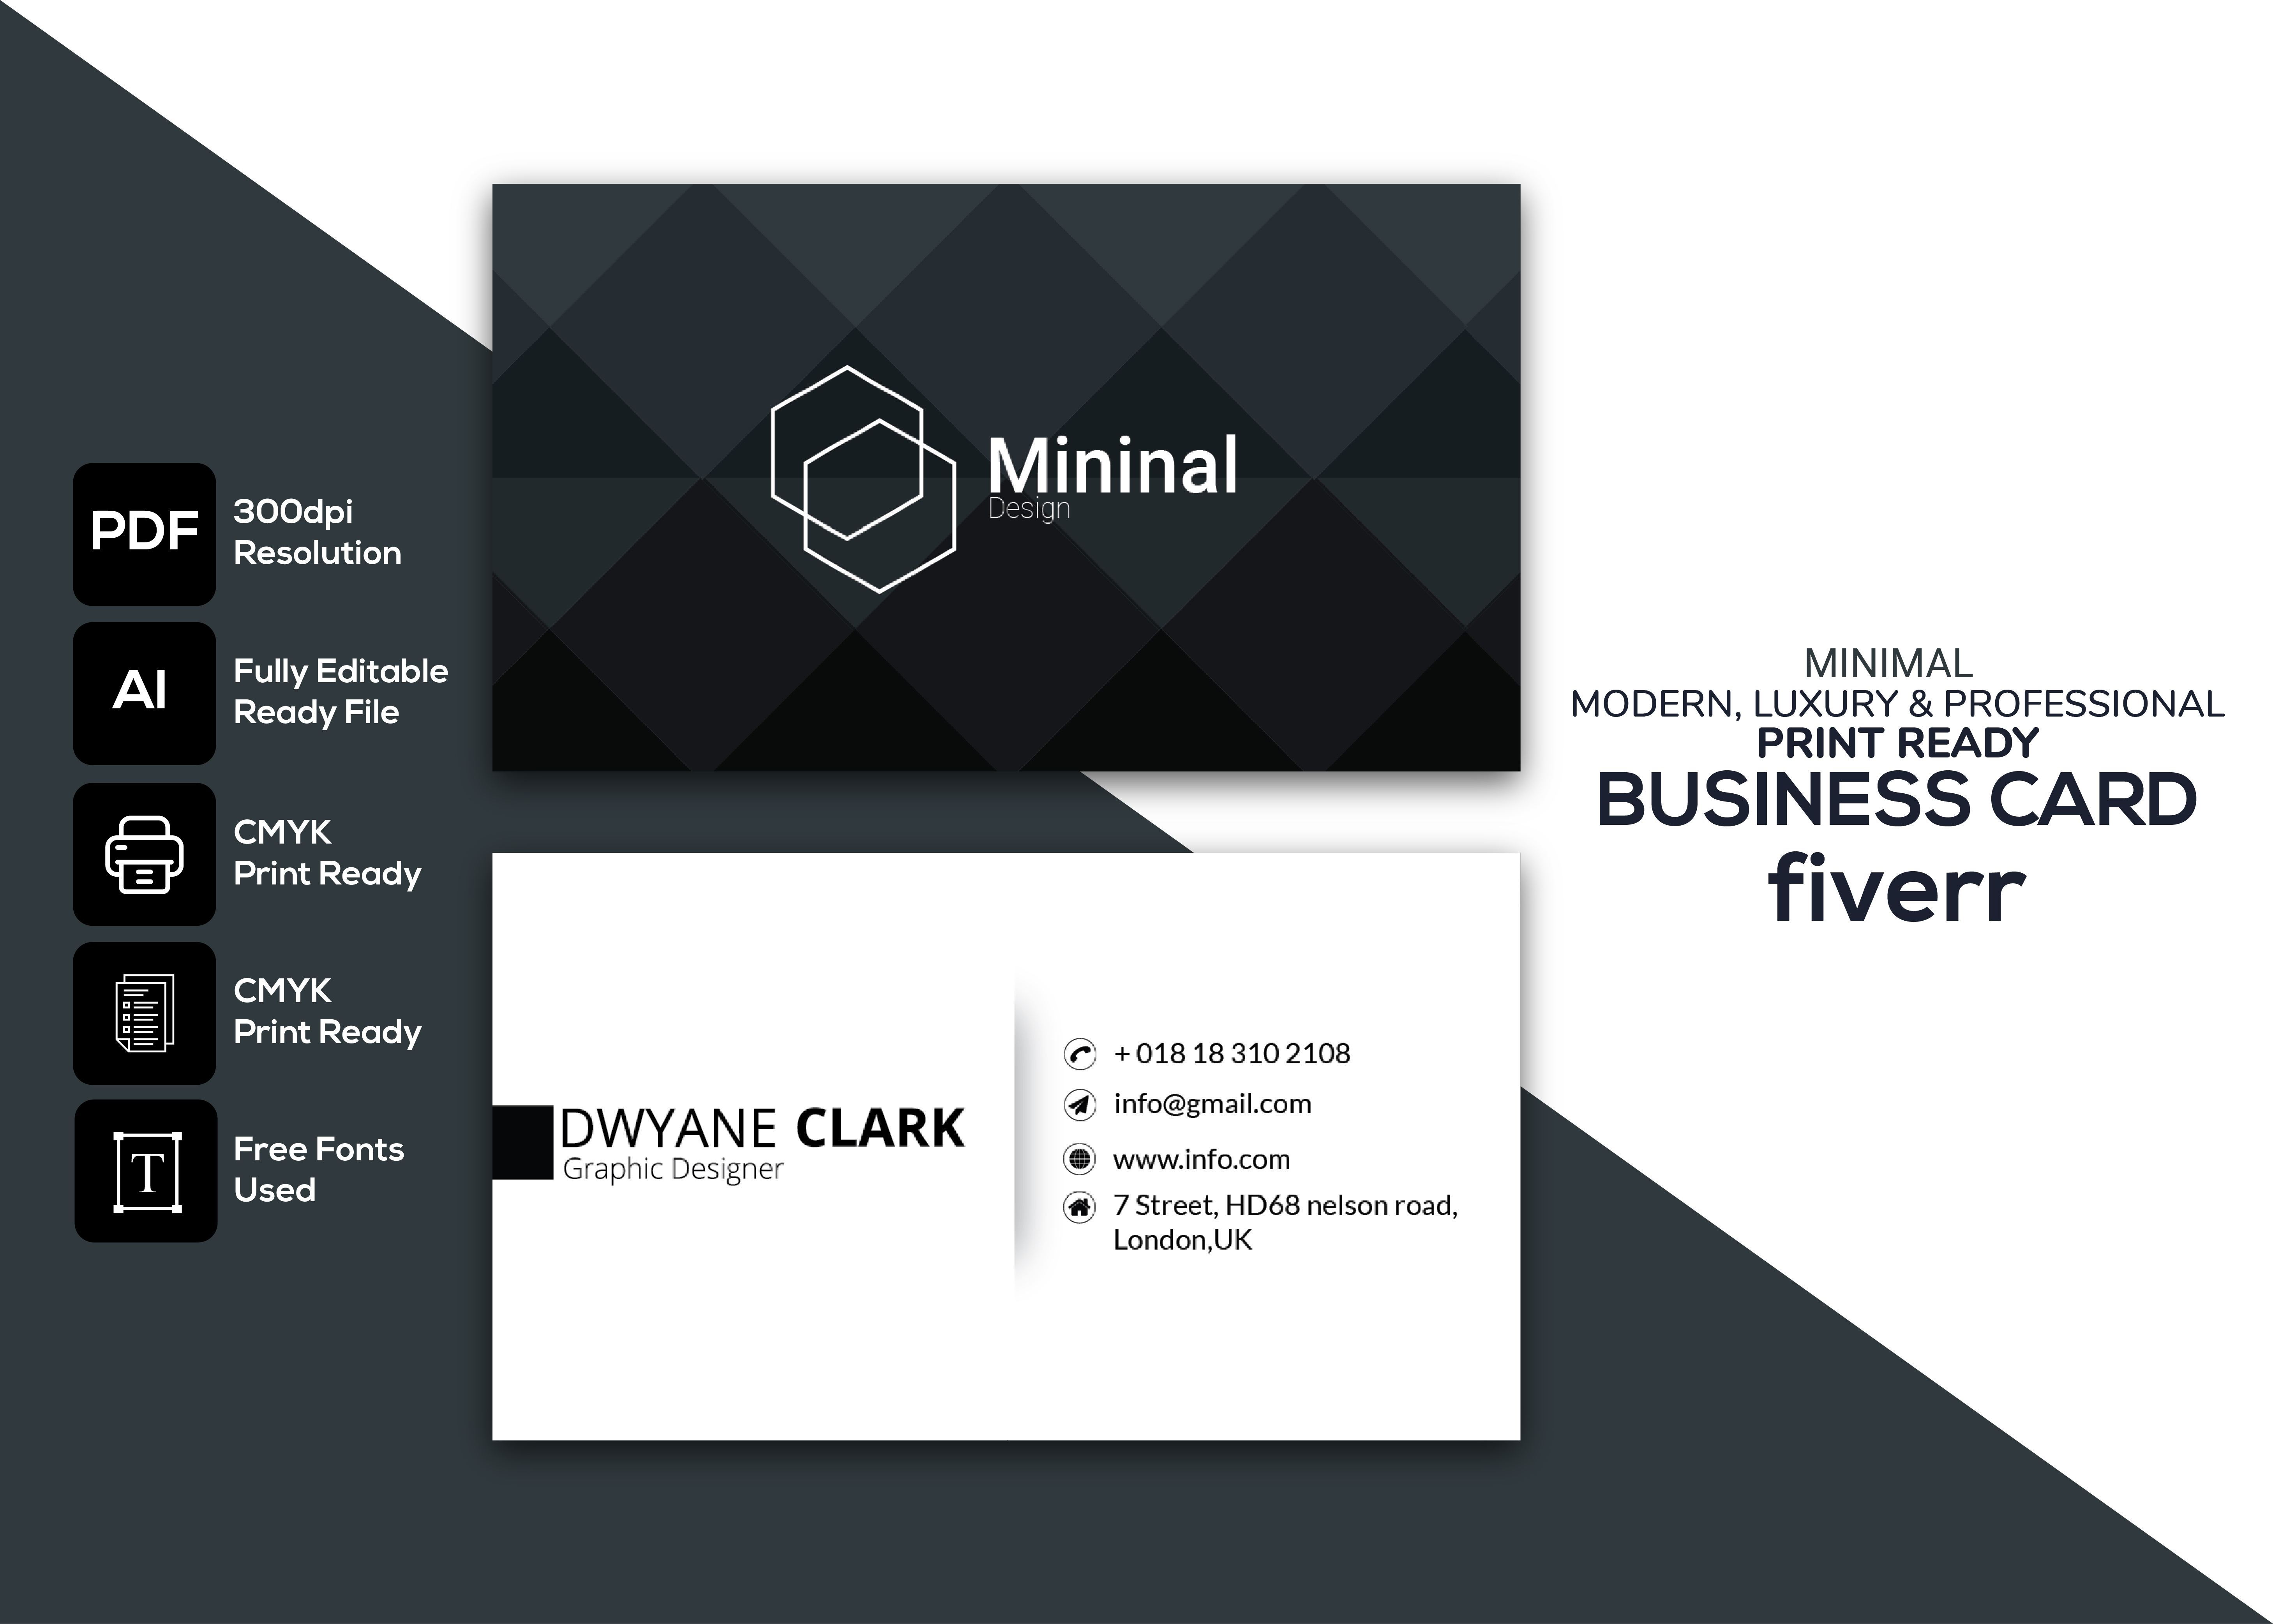 I will design minimal business card within 8 hours